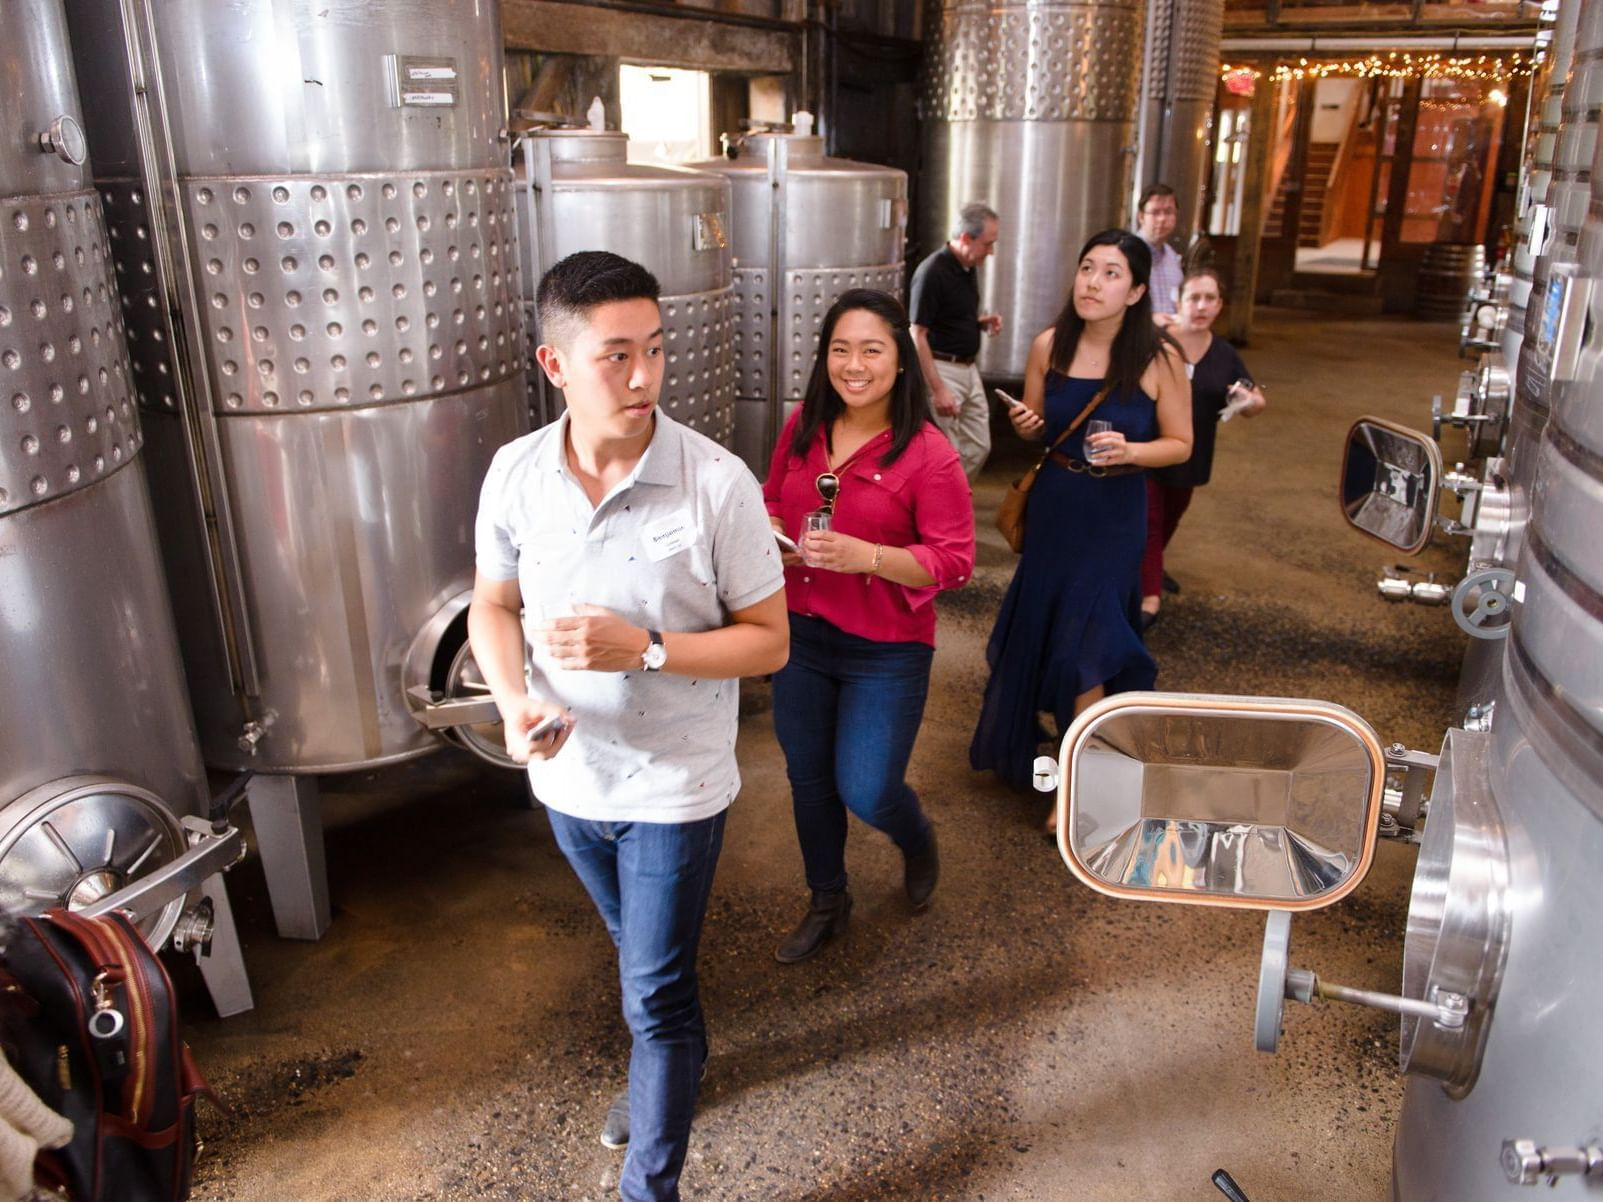 group of people touring a winery